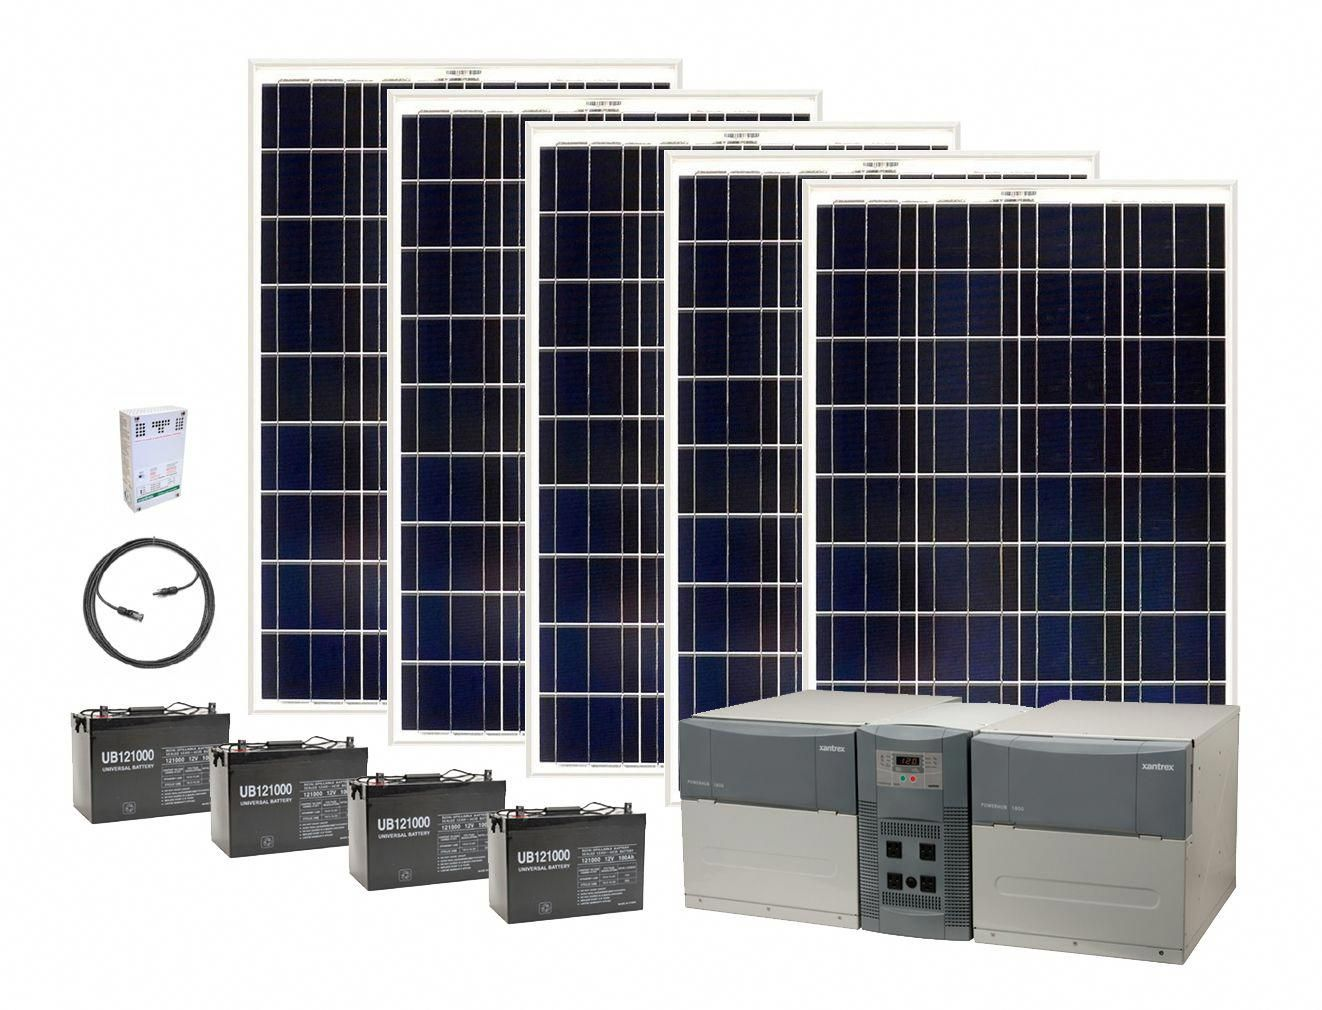 120 Volt Solar Power Generator Kits Earthtech Products Solarpanels Solarenergy Solarpower Solargenerator In 2020 Solar Power House Solar Energy Panels Solar Panels